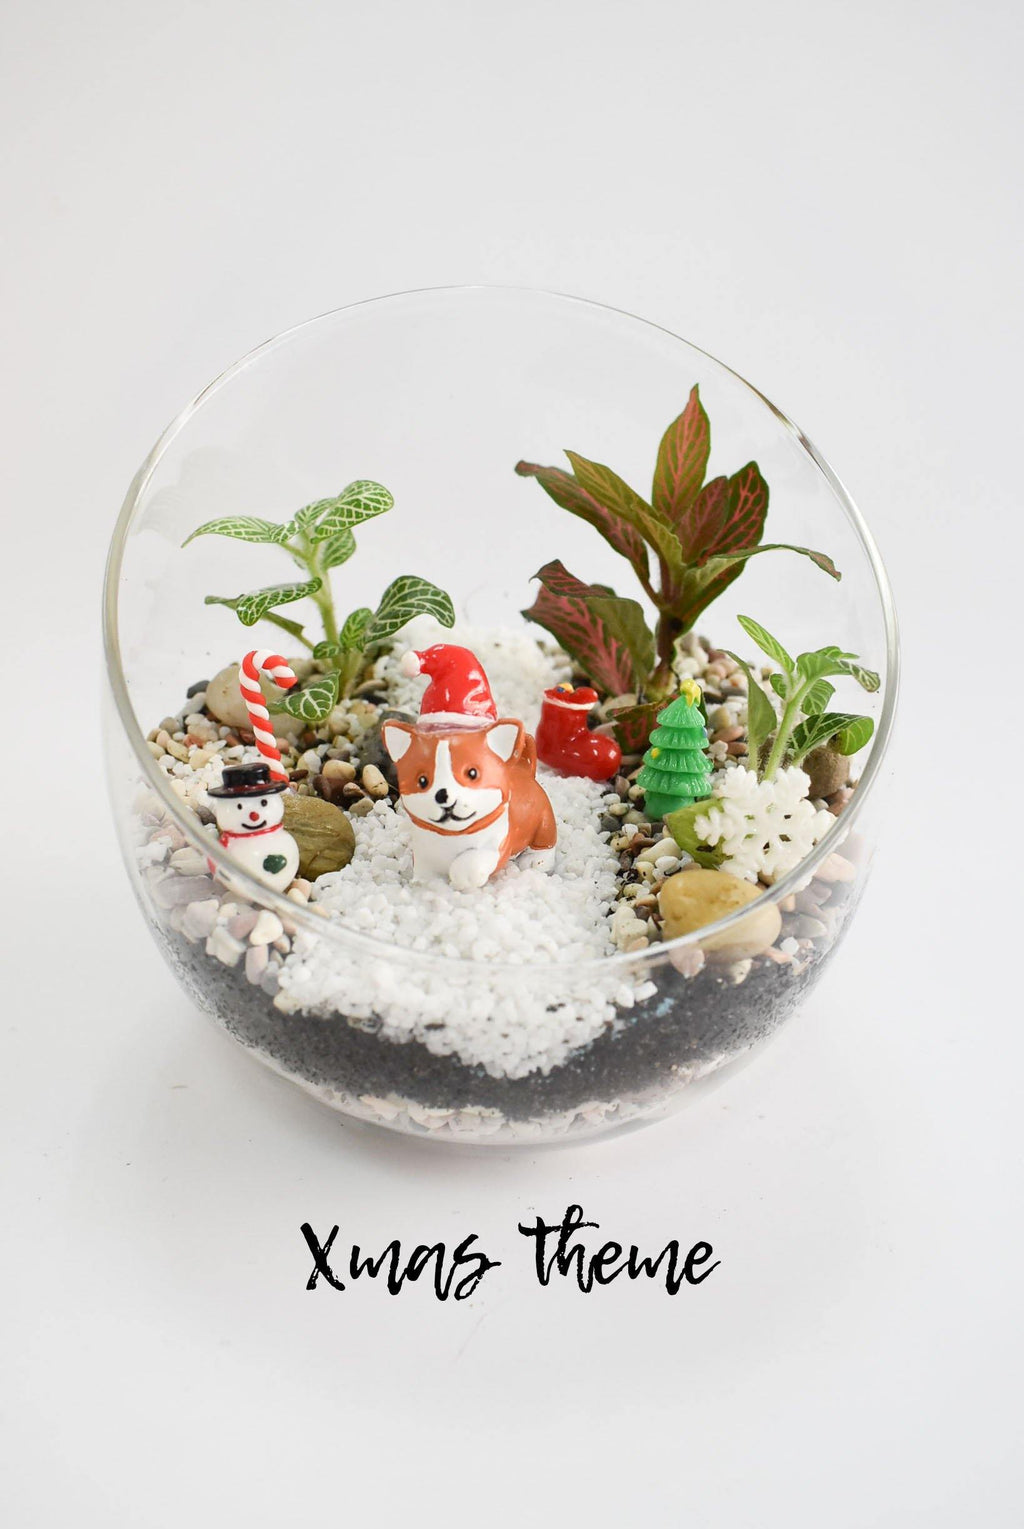 Guided Kids Fittonia Terrarium Workshop from just $54.60 for 2 Children - BYKidO